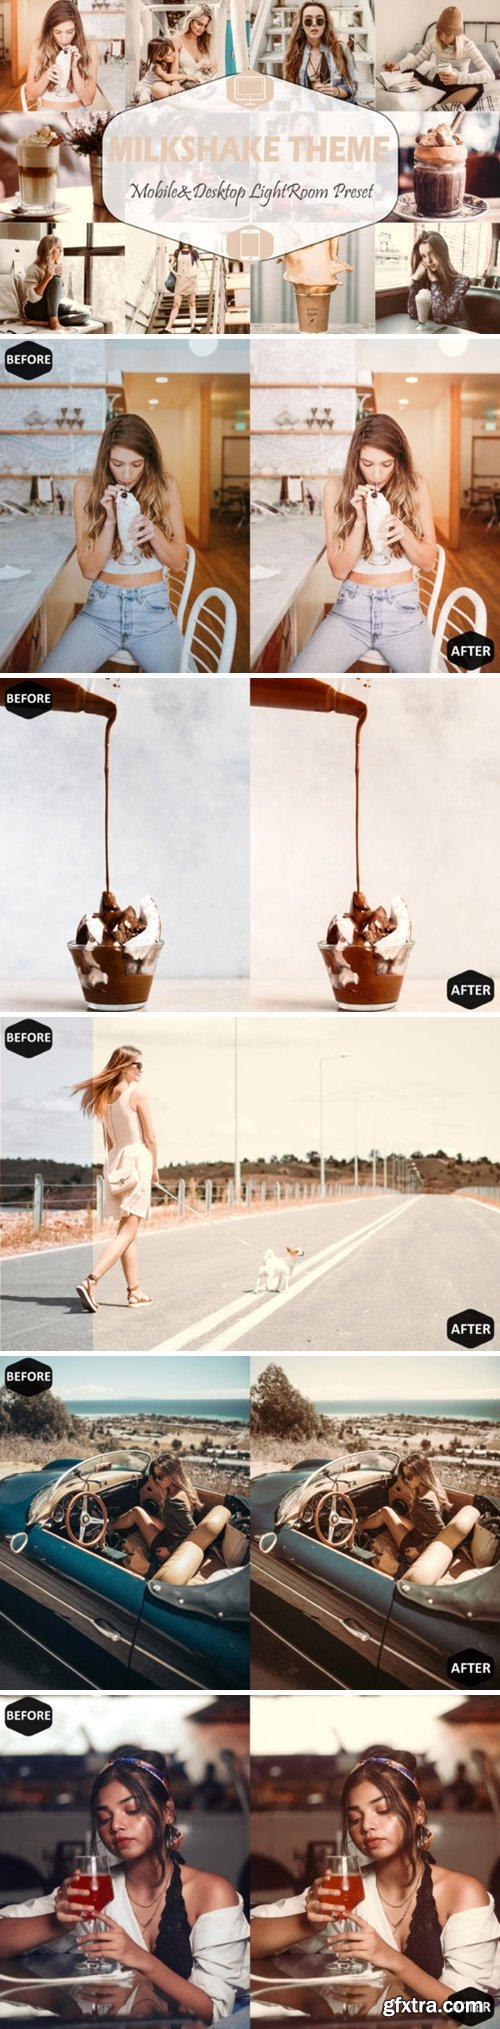 Milkshake Mobile Desktop Lightroom Preset 1629191